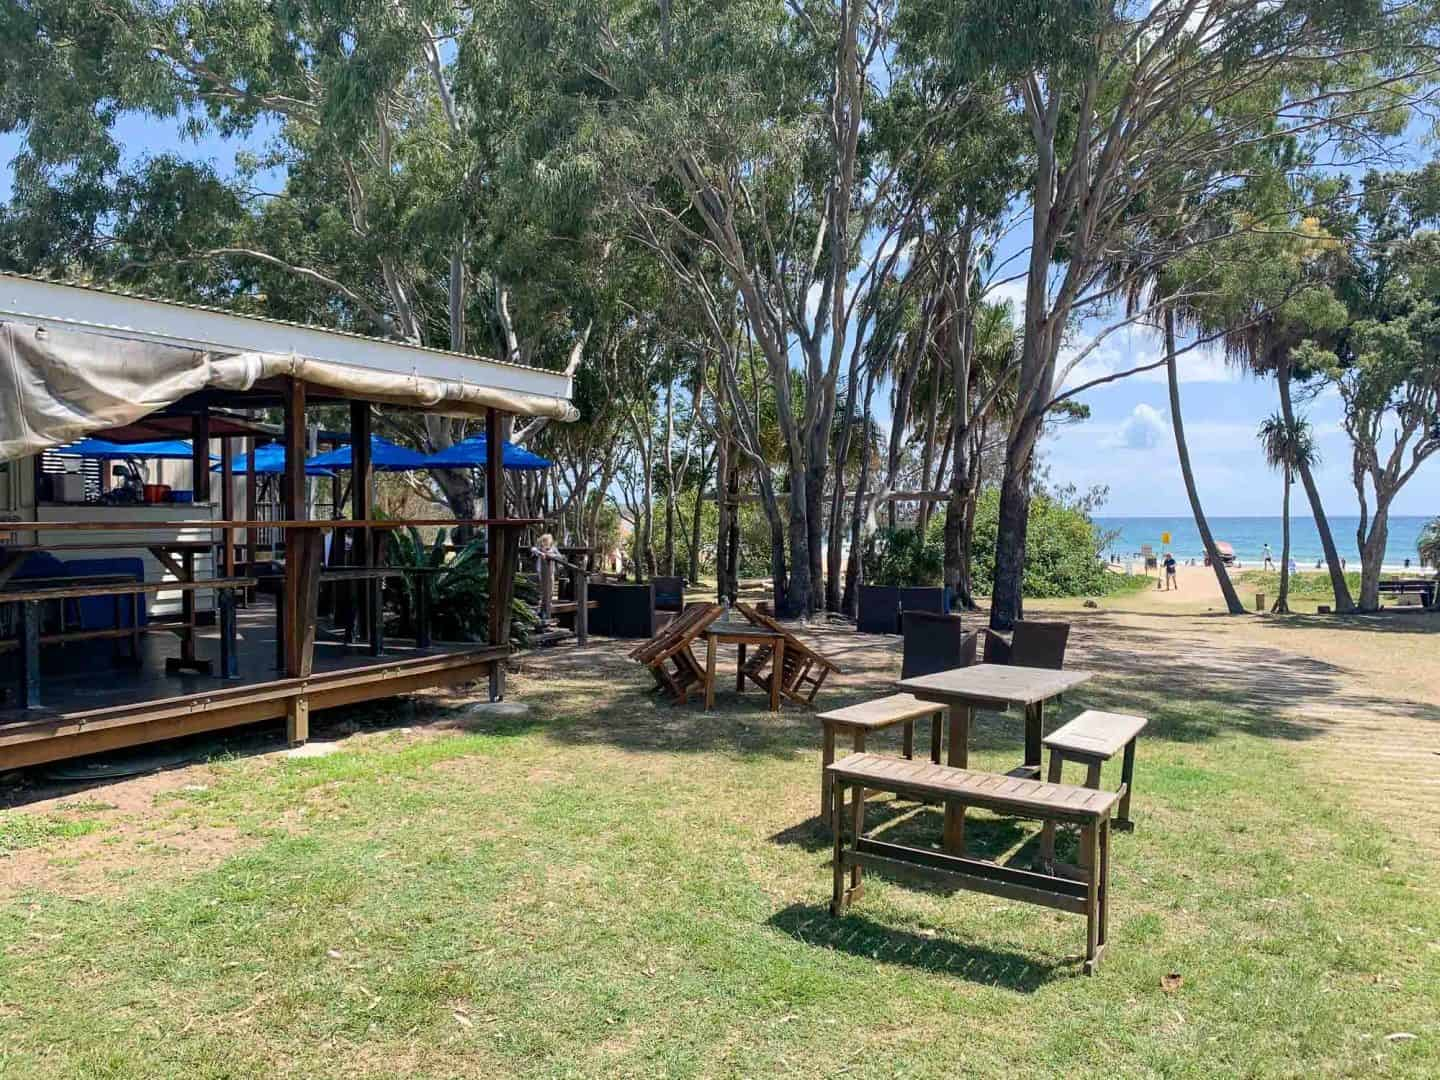 agnes water, agnes waters, things to do in agnes waters, hings to do in agnes water, surfing agnes water, seventeen seventy queensland, seventeen seventy camping, seventeen seventy australia, seventeen seventy, agnes waters things to do, agnes waters map, agnes waters caravan park, agnes waters beach, agnes waters accommodation, agnes water surfing, agnes water surf cam, agnes water queensland, agnes water qld, agnes water caravan park, agnes water camping, agnes water beach, camping ground agnes water, holidays cafe agnes water